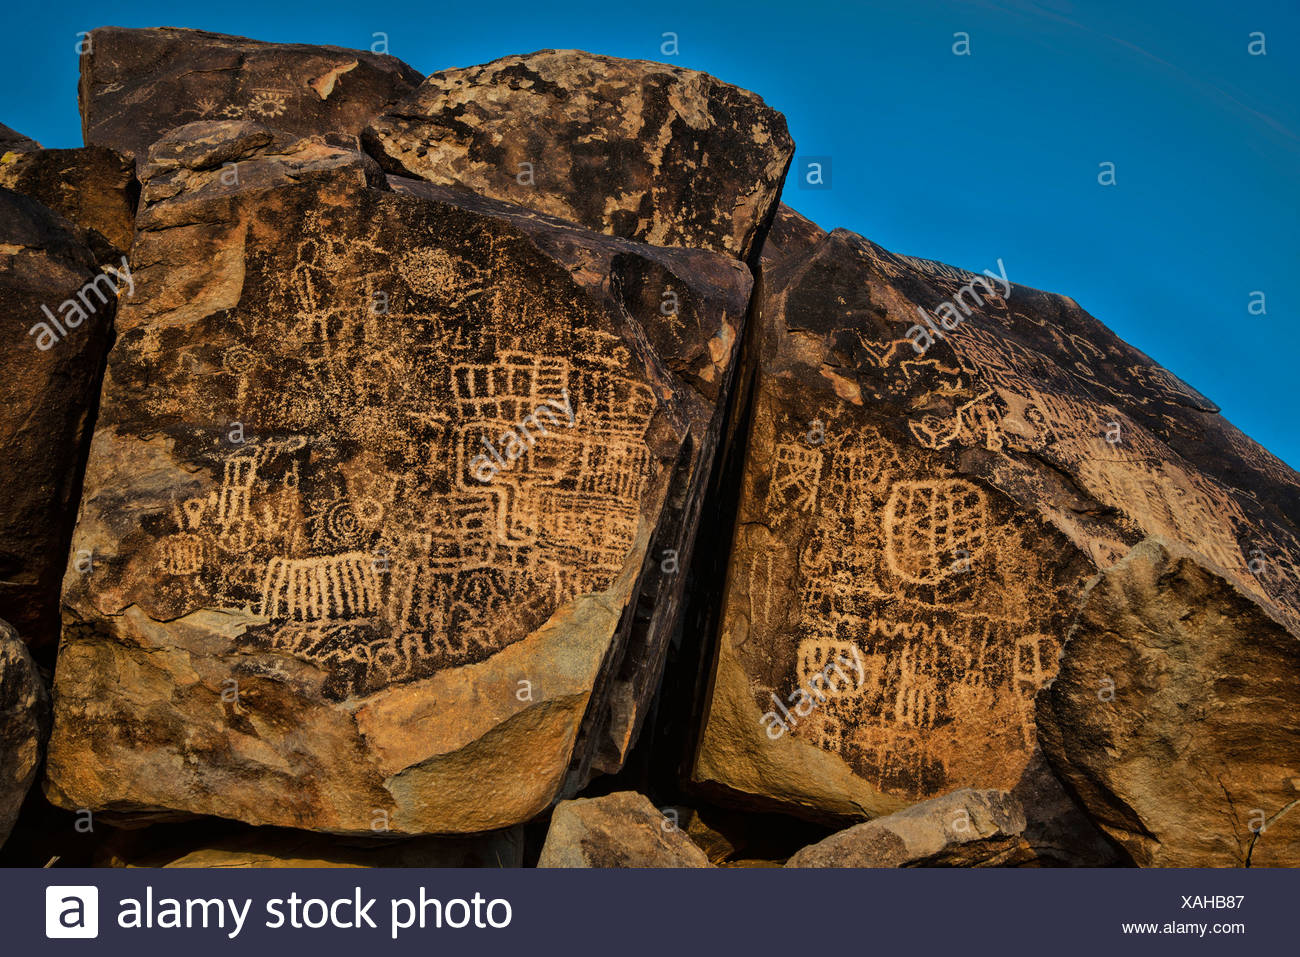 prehistoric, rock art, grapevine canyon, Nevada, USA, United States, America, drawing - Stock Image